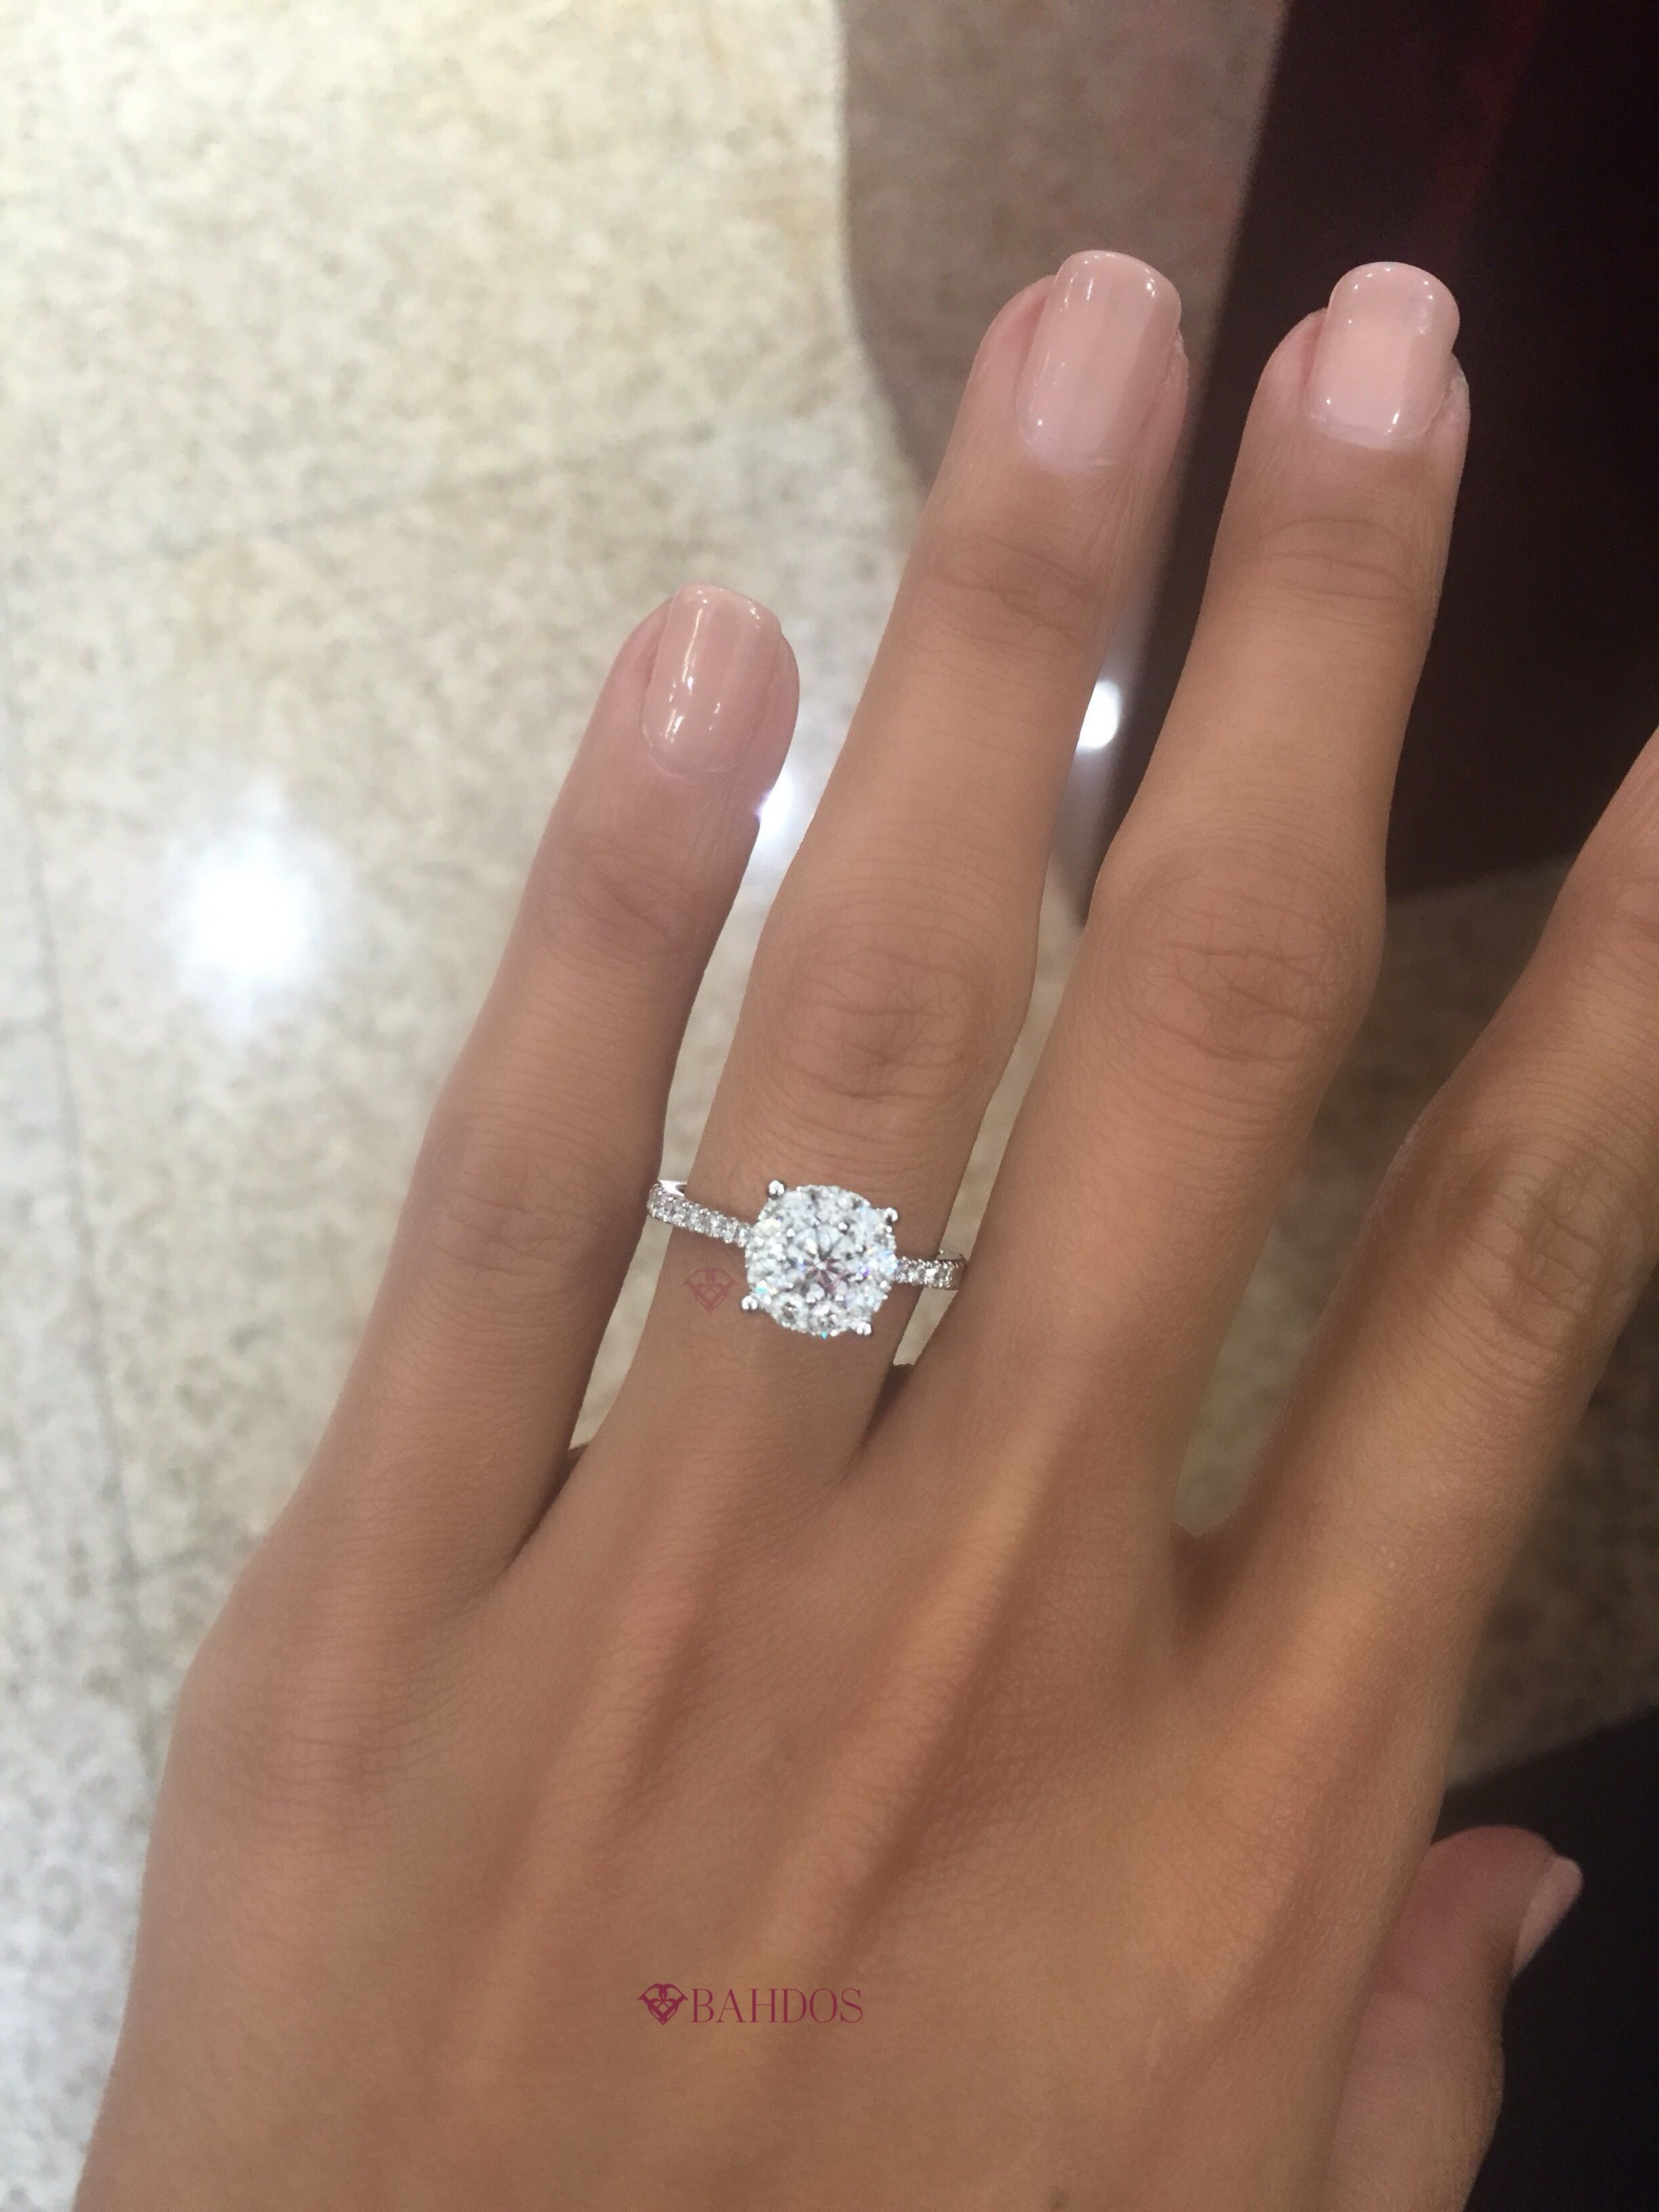 It S Weddingringwednesday We Can T Take Our Eyes Off This Stunner Keep It Simple Keep It C Stunning Engagement Ring Wedding Ring Sets Wedding Rings Simple